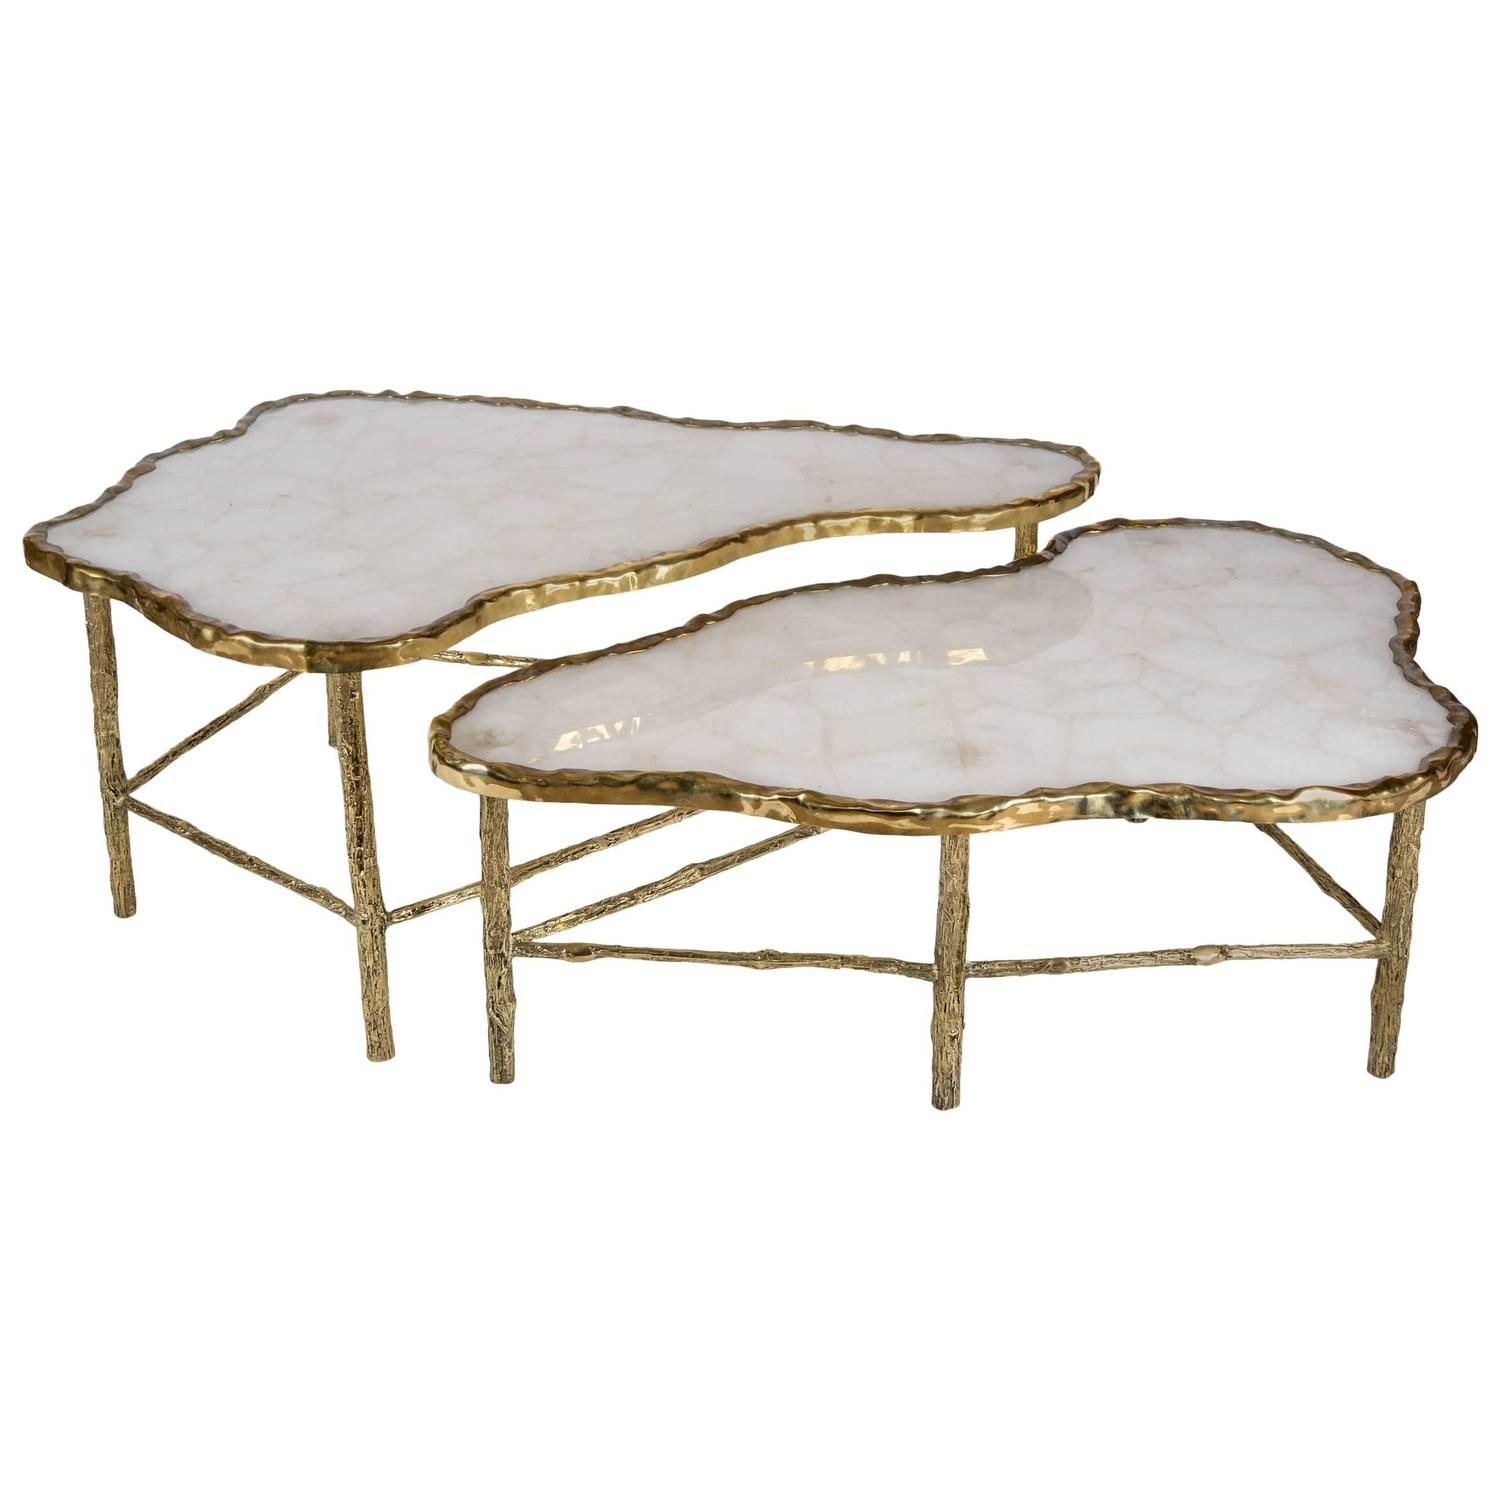 Fabulous Pair Of Rock Crystal Coffee Tables From A Unique